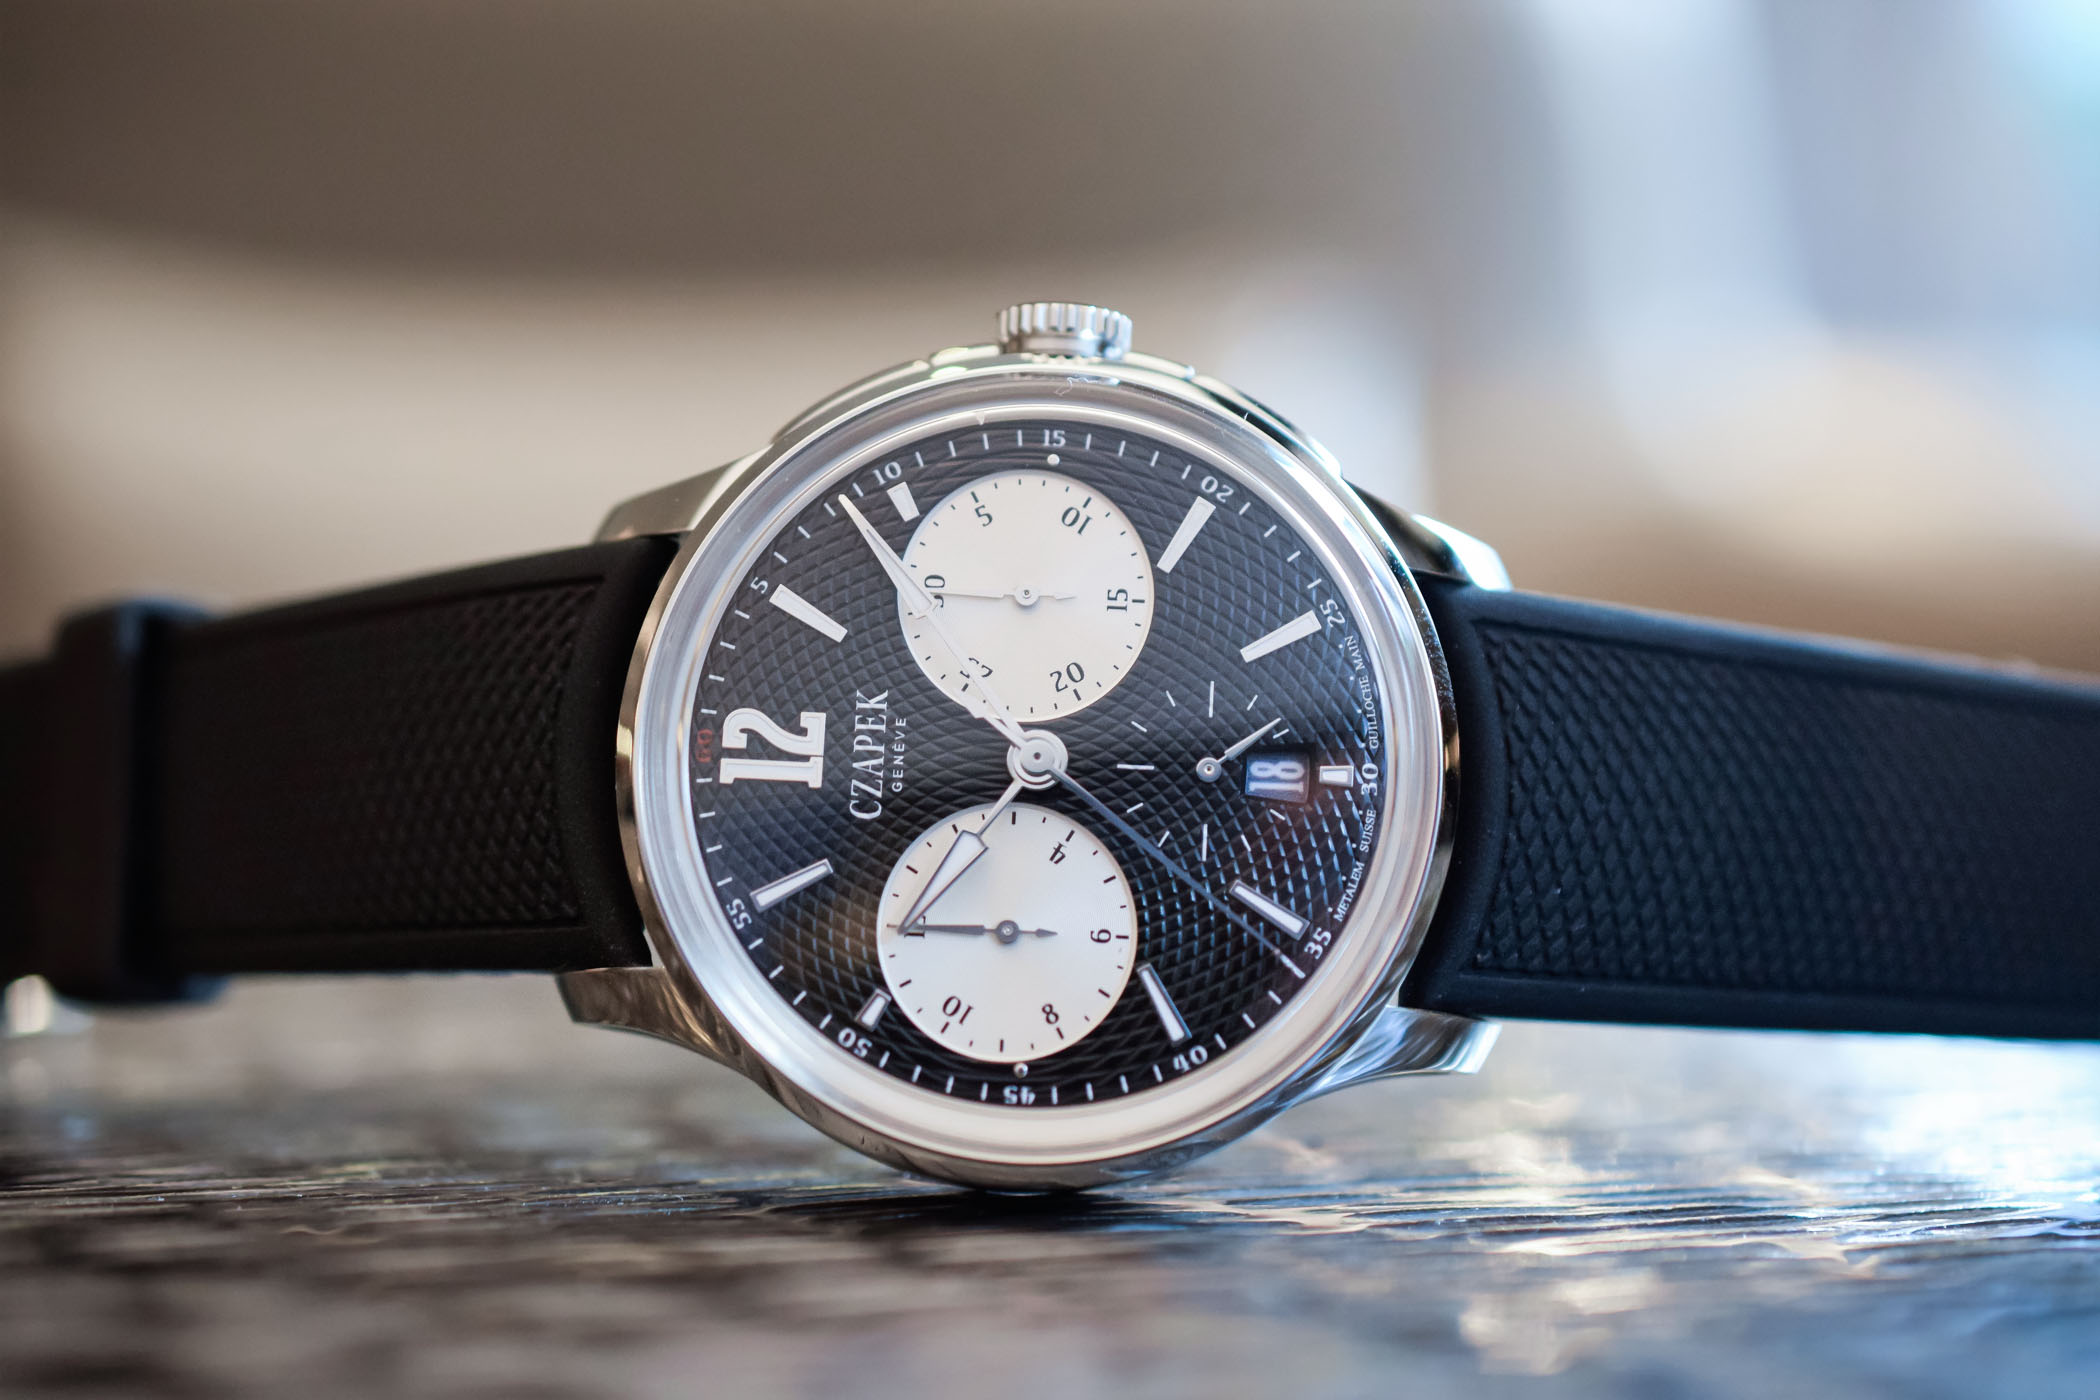 Czapek Faubourg de Cracovie Chronograph - Baselworld 2018